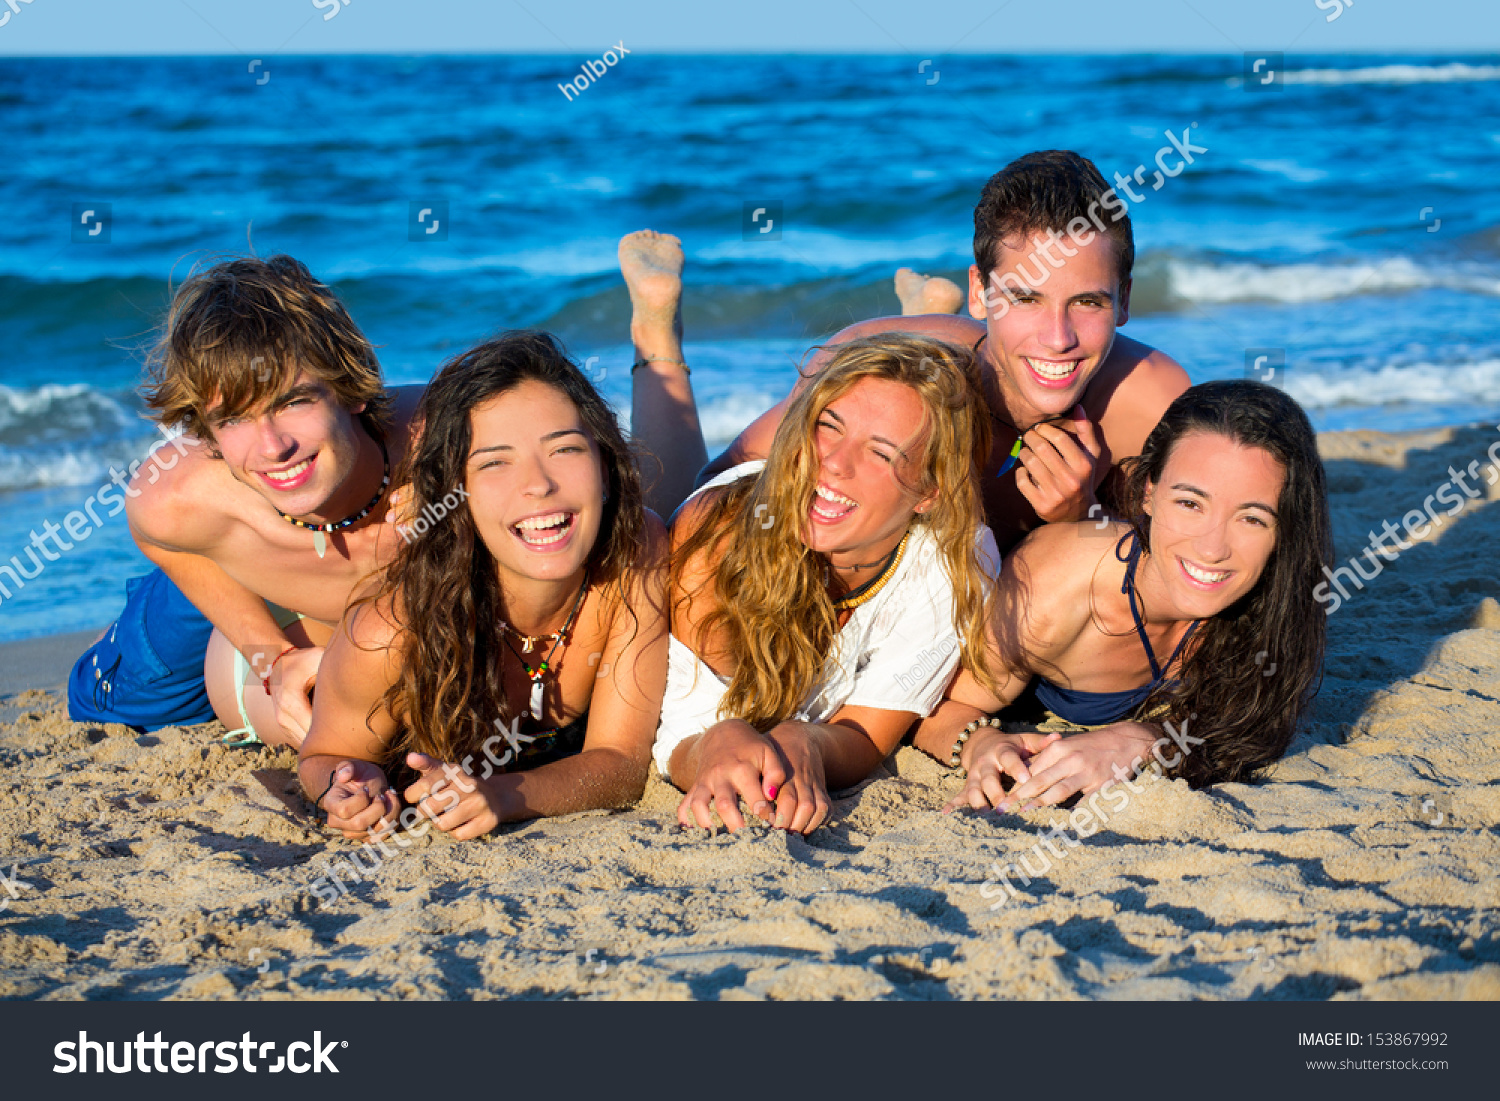 beach-teen-boys-and-girls